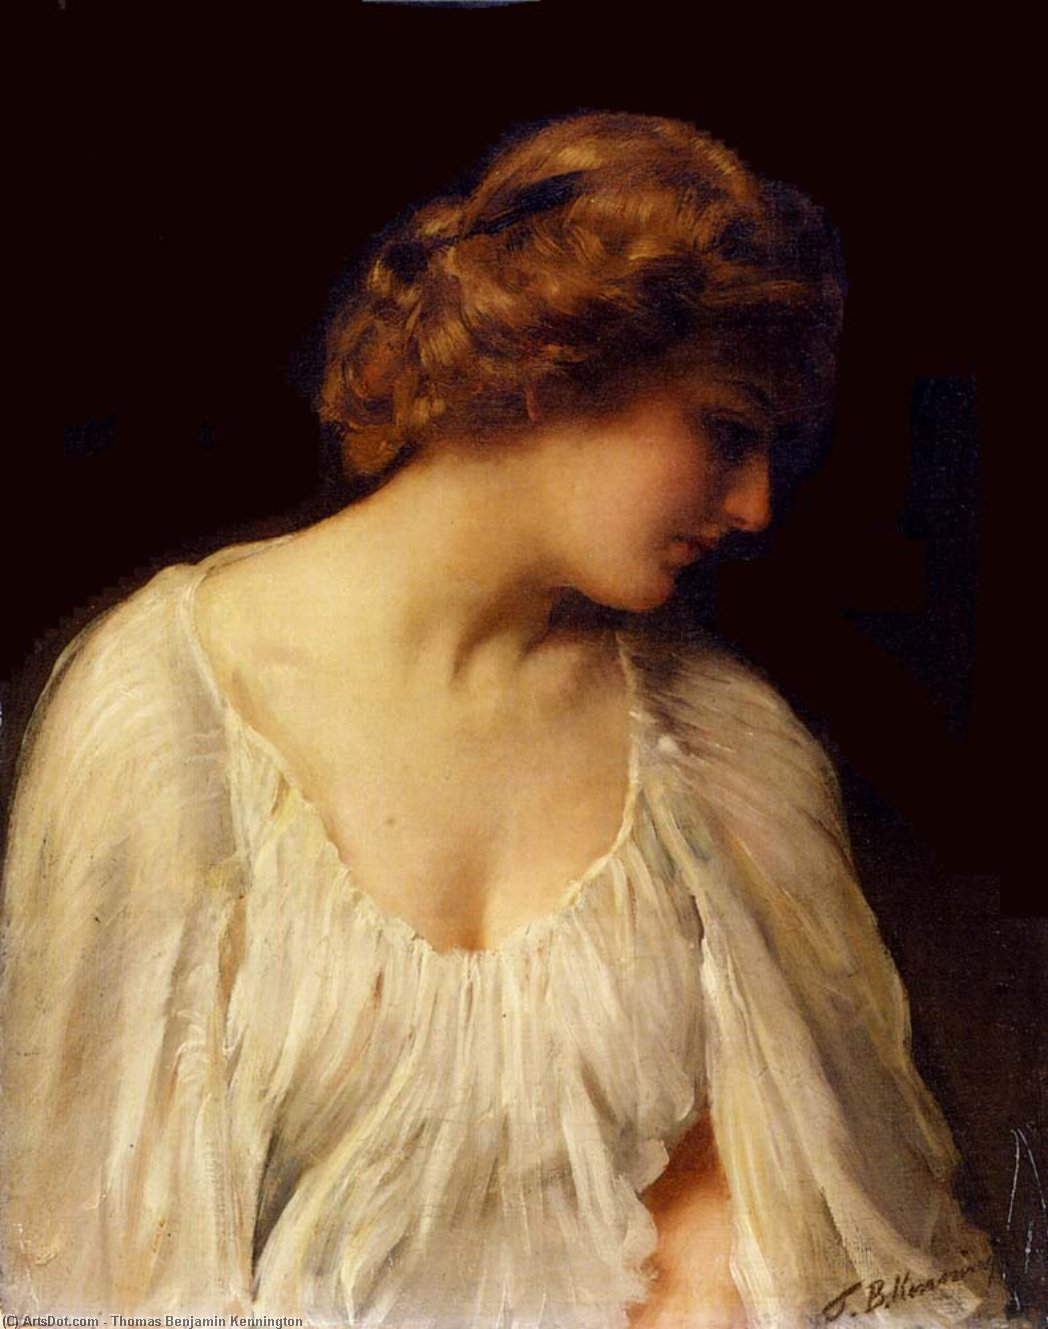 Contemplation by Thomas Benjamin Kennington (1856-1916, United Kingdom)